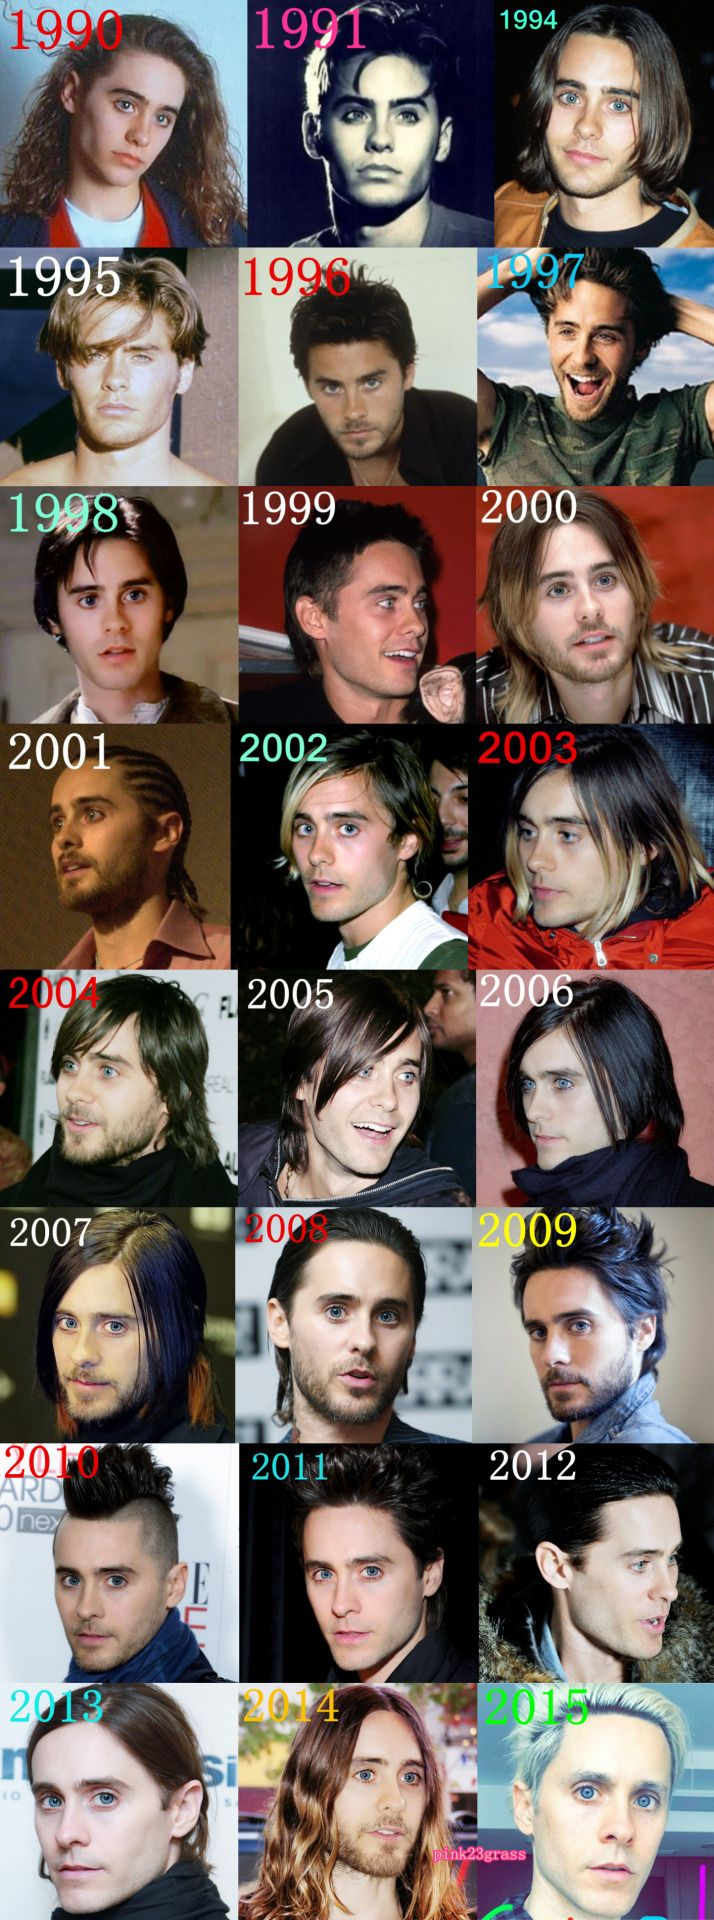 pink23grass: JARED LETO 1990-2015, MY EDIT